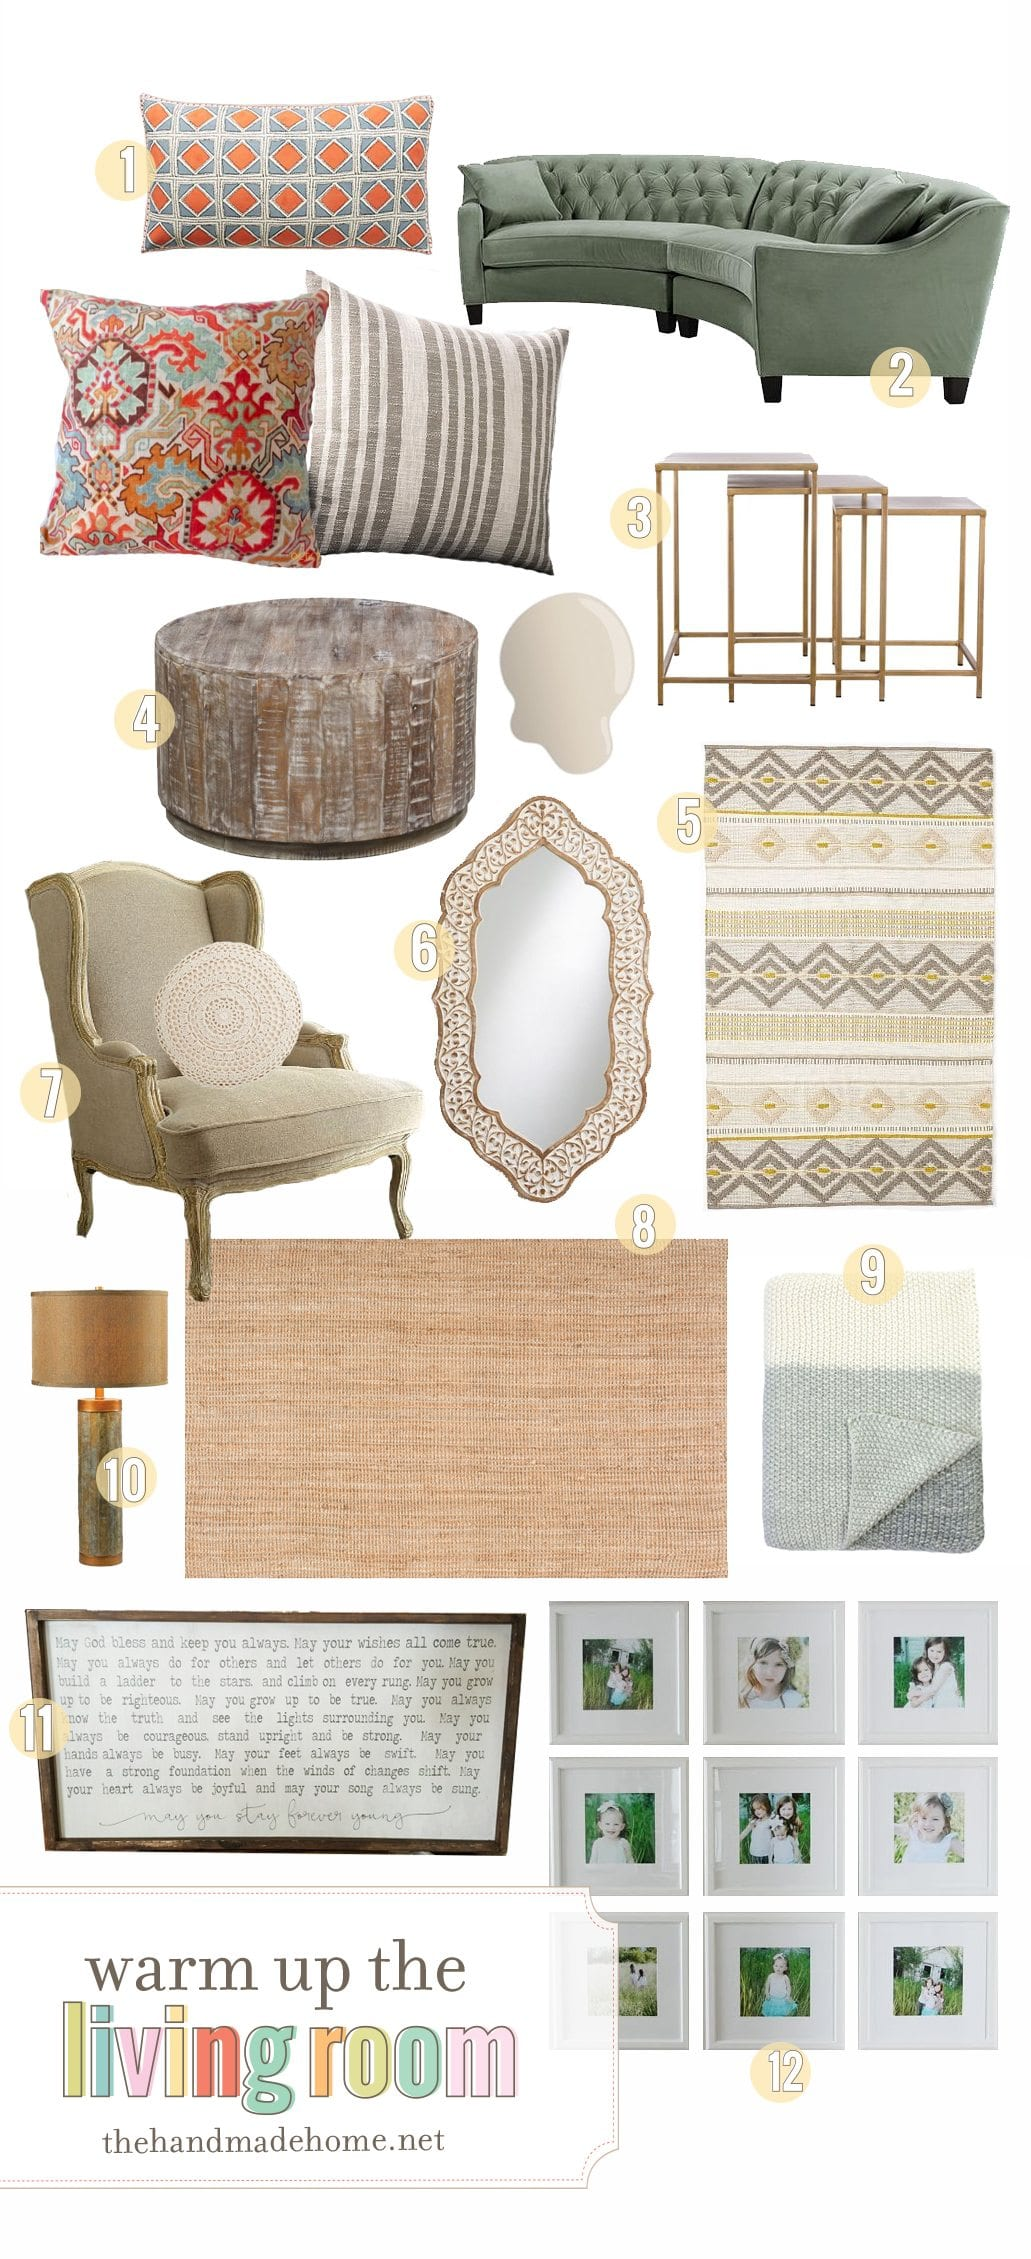 For Their Living Room We Wanted To Choose Items That Both Worked With Existing Pieces But Then Also Have A Few Suggestions Newer Down The Line